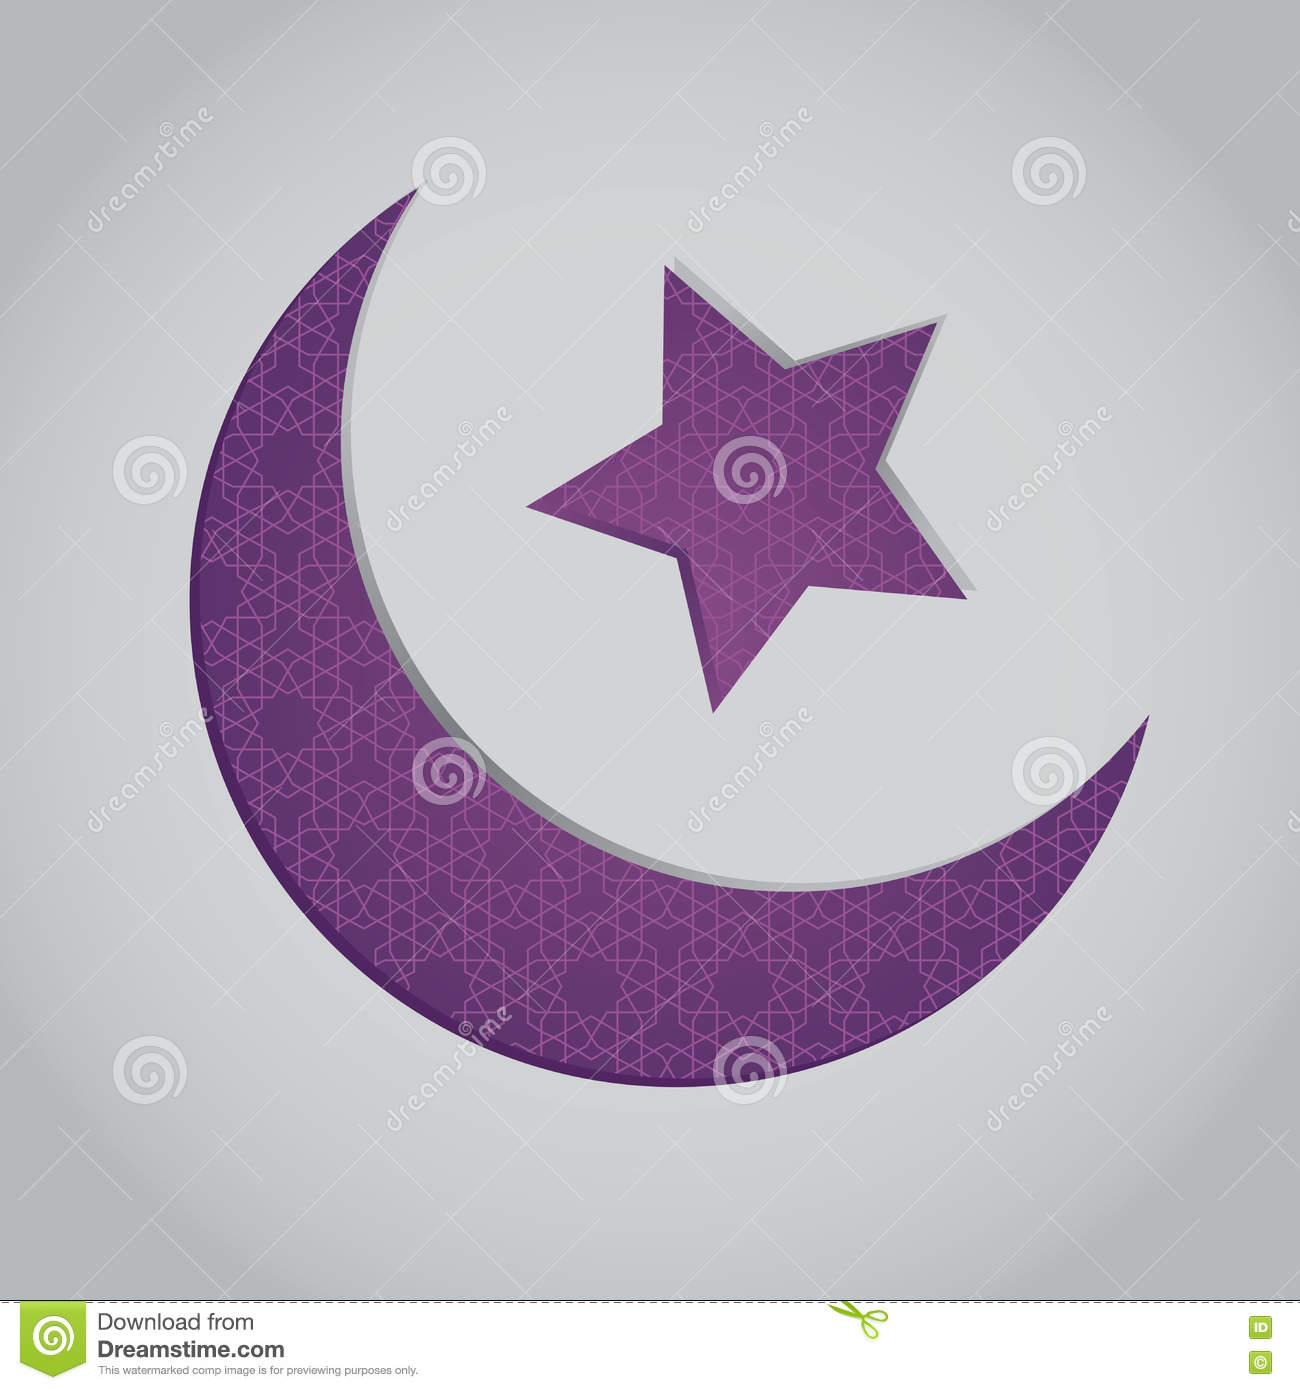 Islamic crescent moon and star with arabic pattern background islamic crescent moon and star with arabic pattern background biocorpaavc Gallery